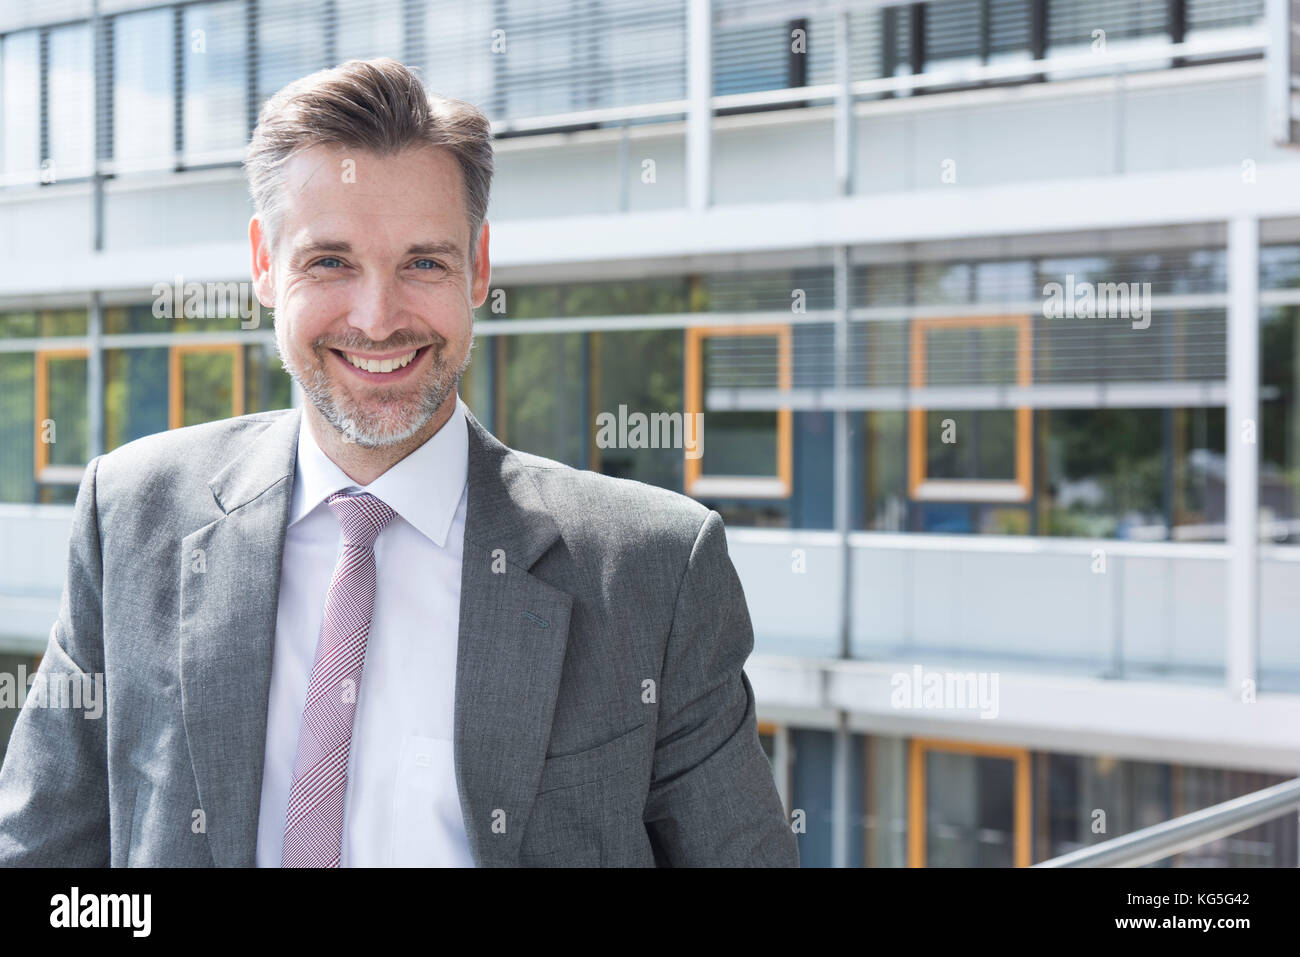 Businessman on balcony in front of office building, looks smilingly in the camera, portrait - Stock Image